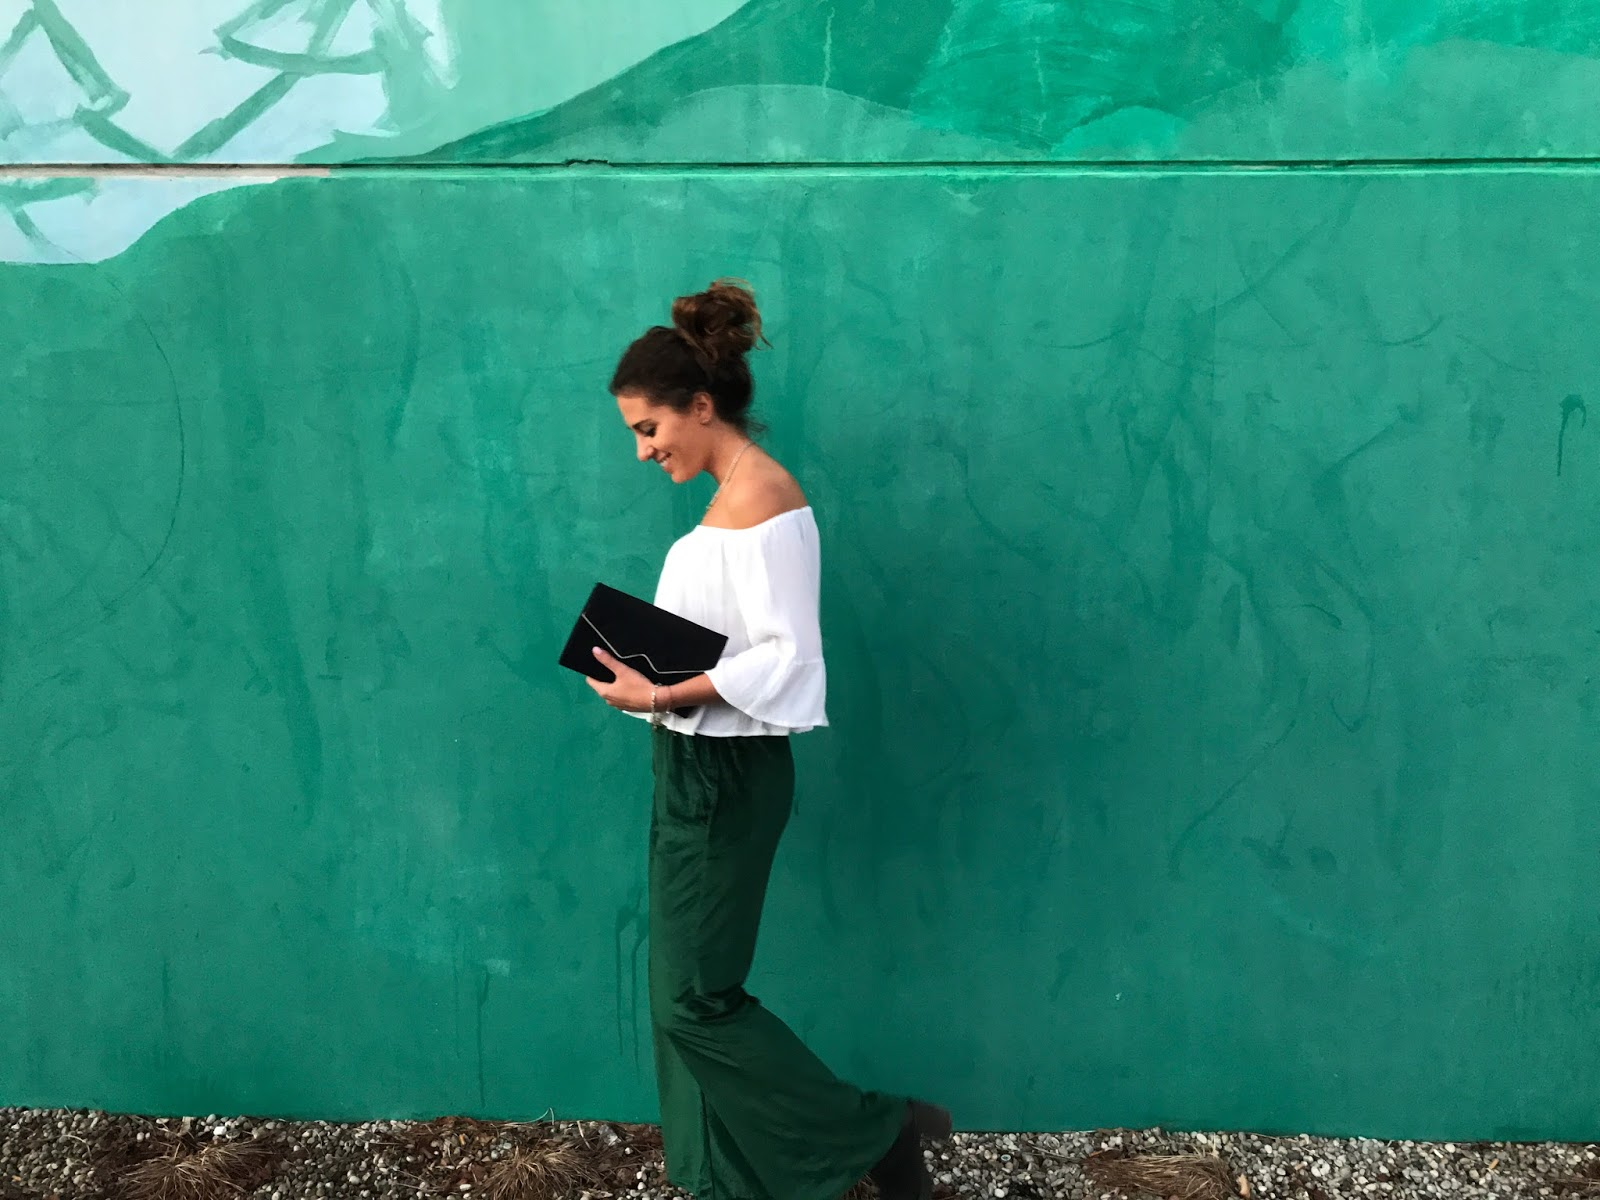 velvet outfit, luxurious fabric, a reminiscent of noble times, fashion need blog, valentina rago, velvet outfit inspiration christmas, velvet outfit inspo, fashion blogger